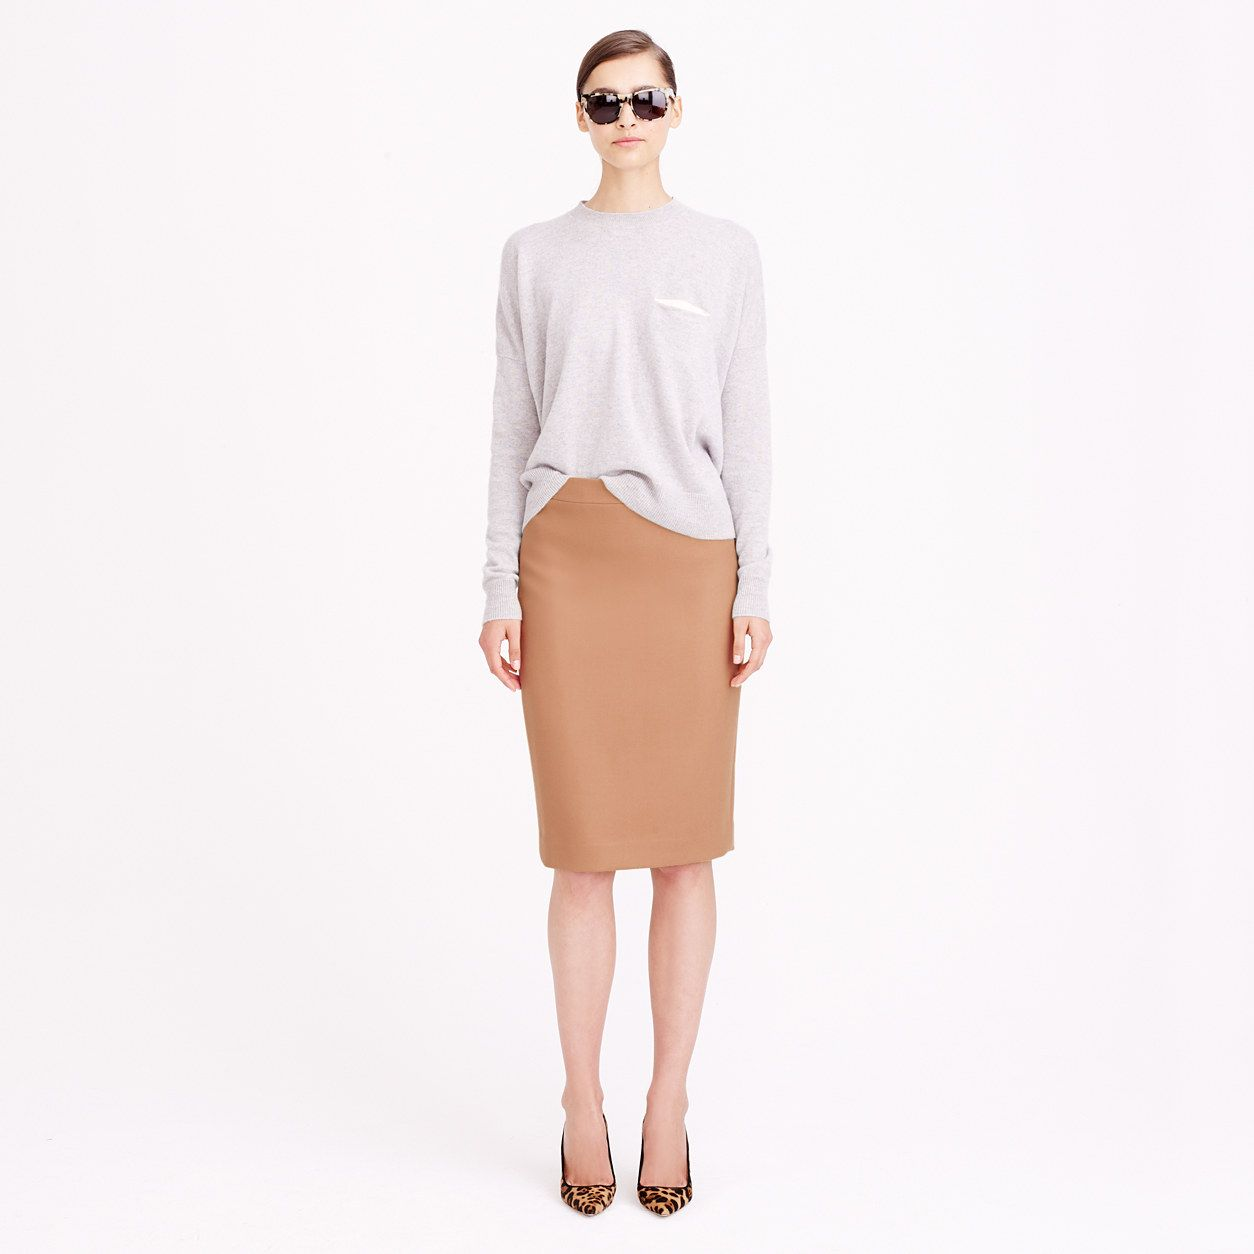 No. 2 pencil skirt in double-serge wool   skirts  440953123